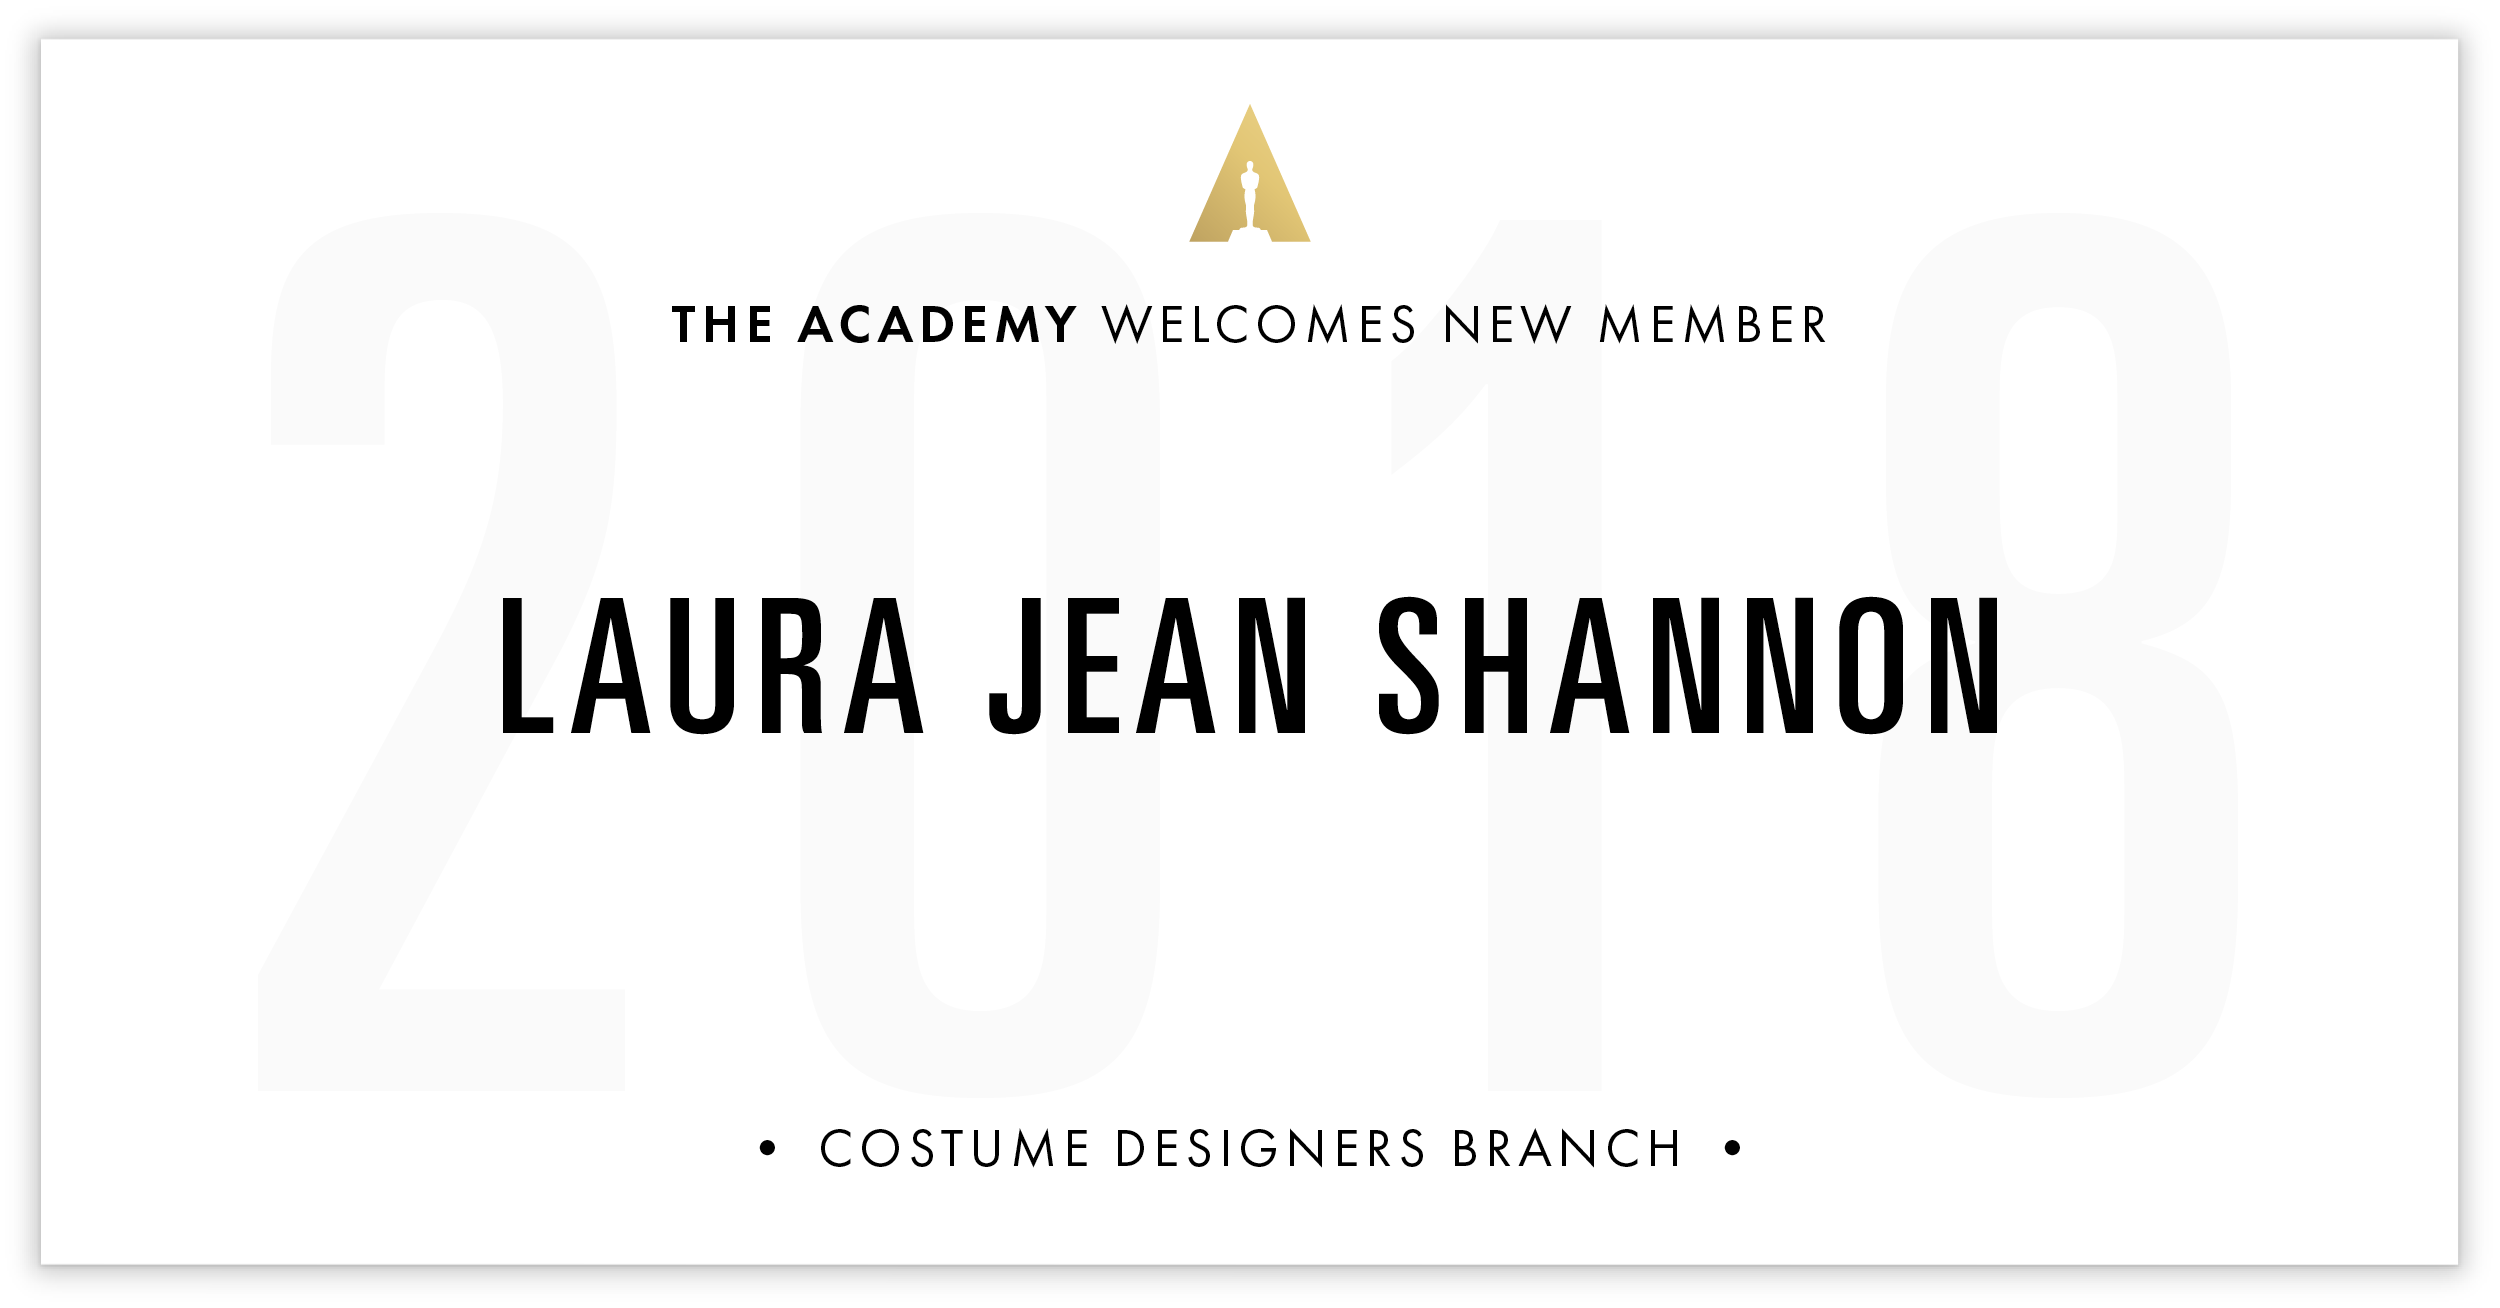 Laura Jean Shannon is invited!